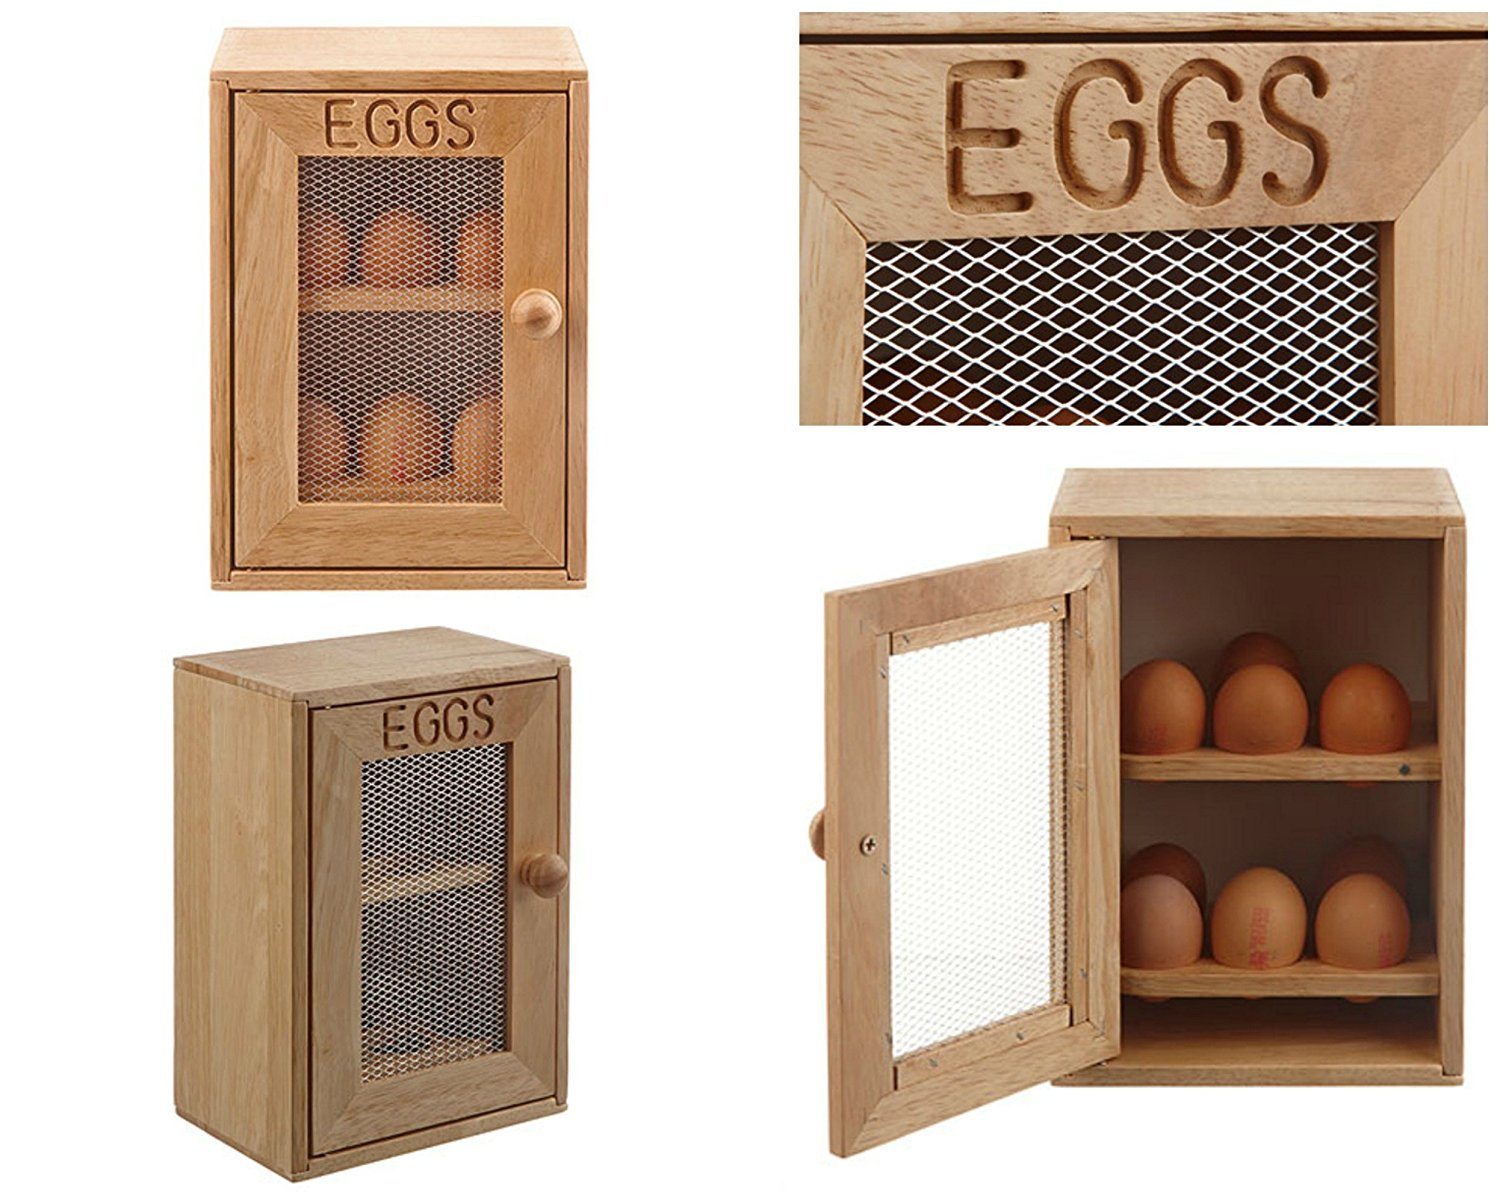 Homezone® Rustic Shabby Chic Wooden 2 Tier Egg Storage Rack Cabinet, Novelty